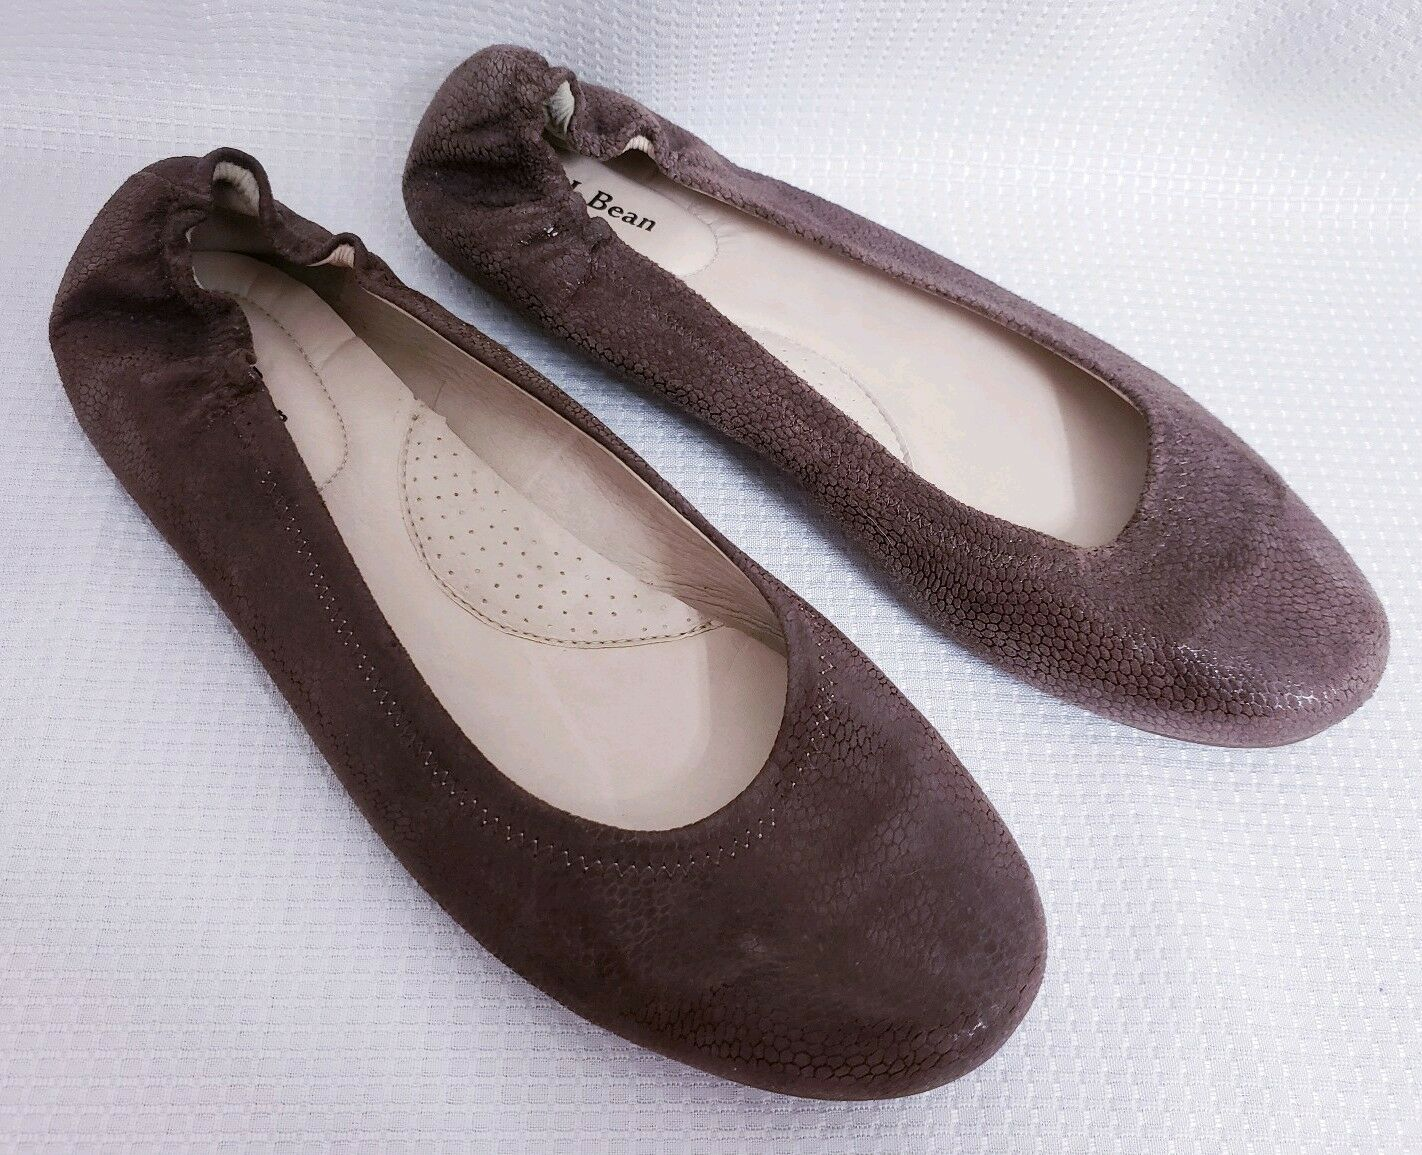 LL Bean Brazil Brown Embossed Leather Ballet Flats shoes sz 9 M Women's